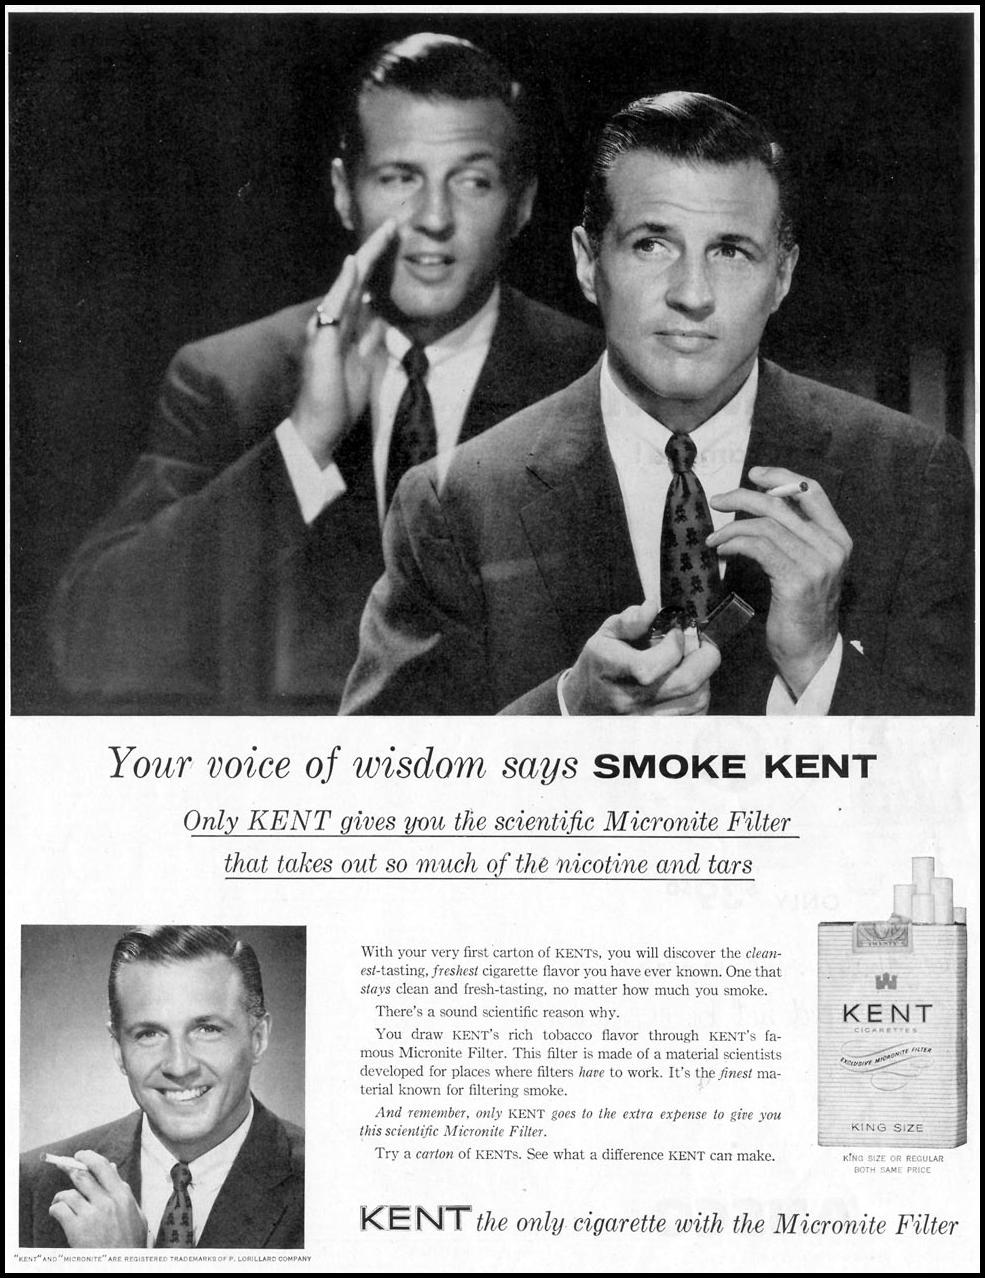 KENT CIGARETTES SATURDAY EVENING POST 07/23/1955 p. 61